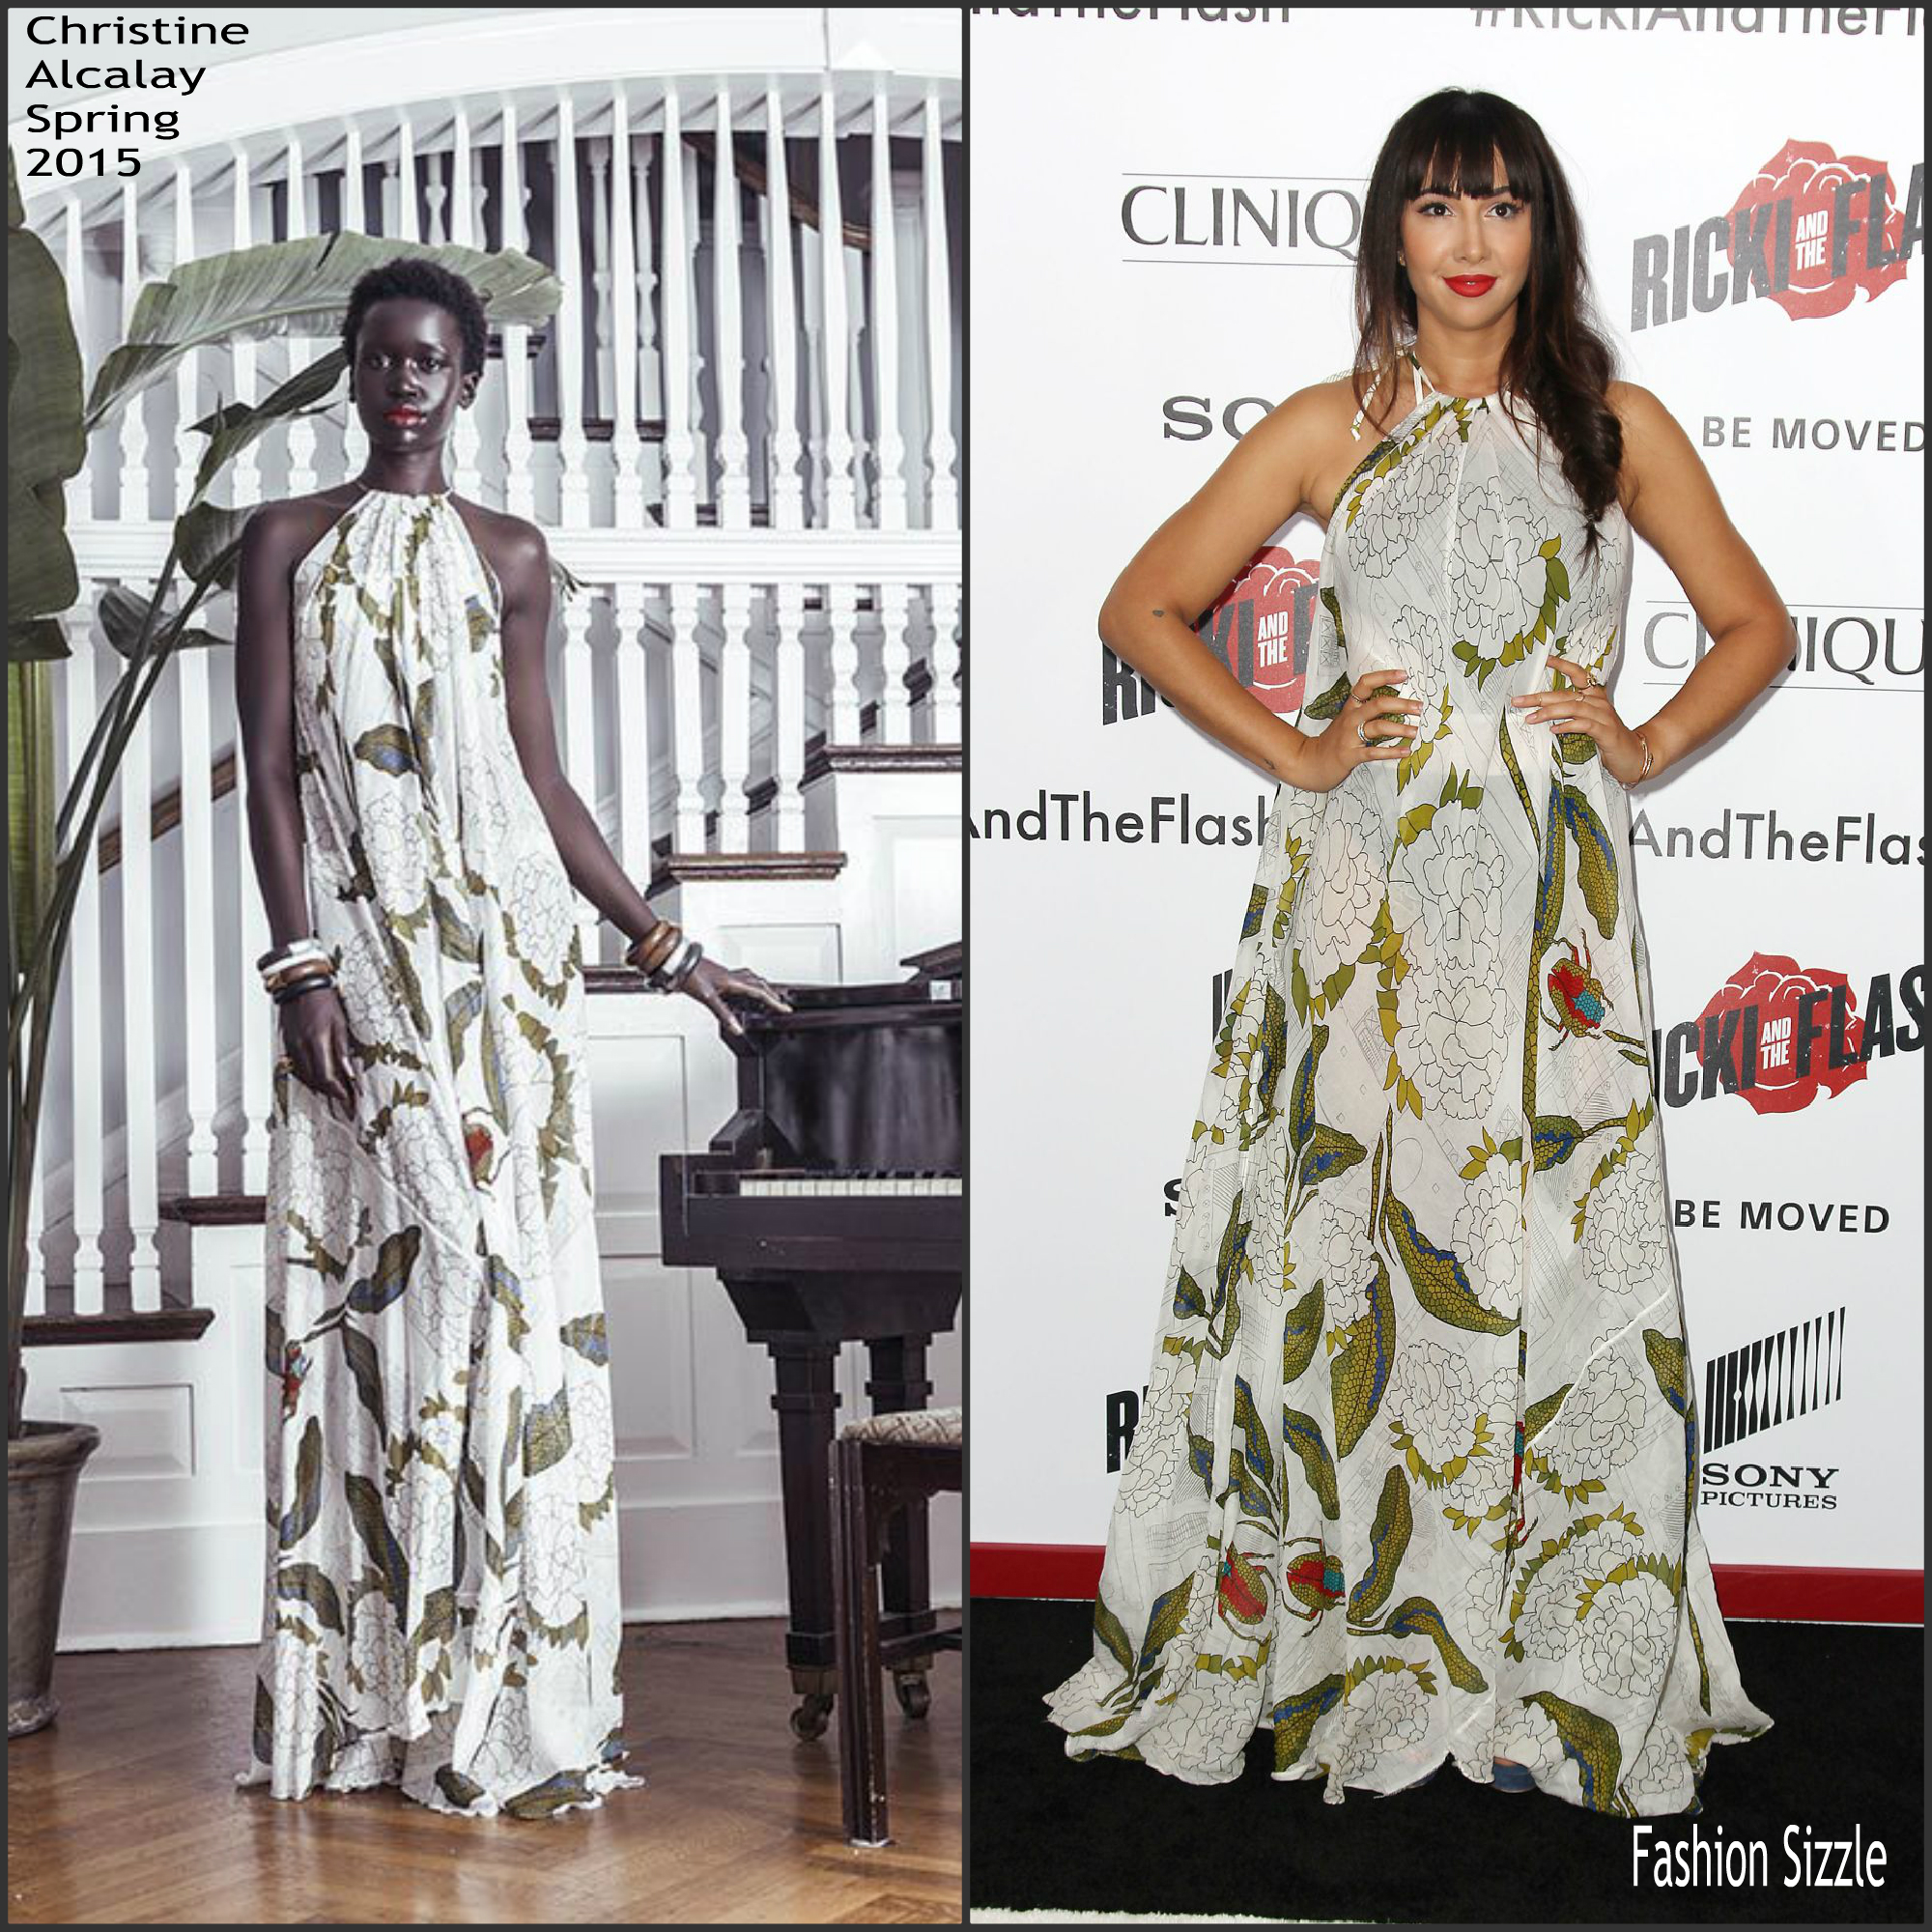 jackie-cruz-in-christine-alcalay-ricki-and-the-flash-new-york-premiere